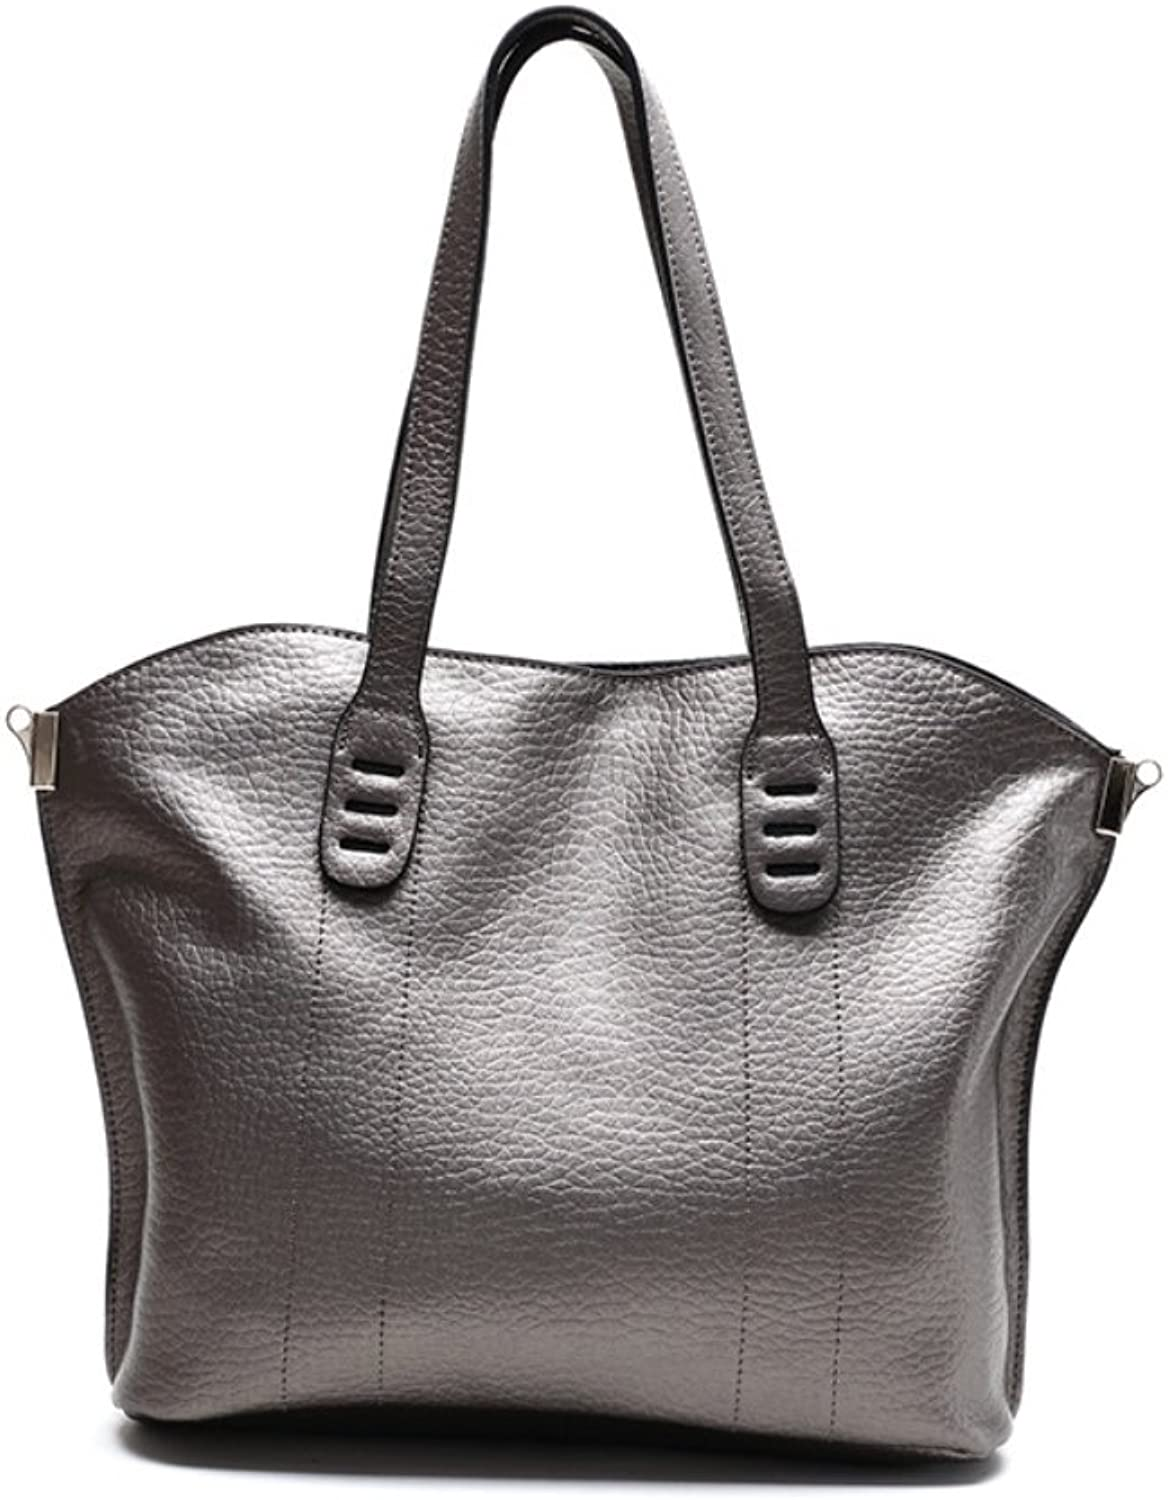 HIFISH HB125035 Leather Europe Style greenical Section Square Tote Handbag